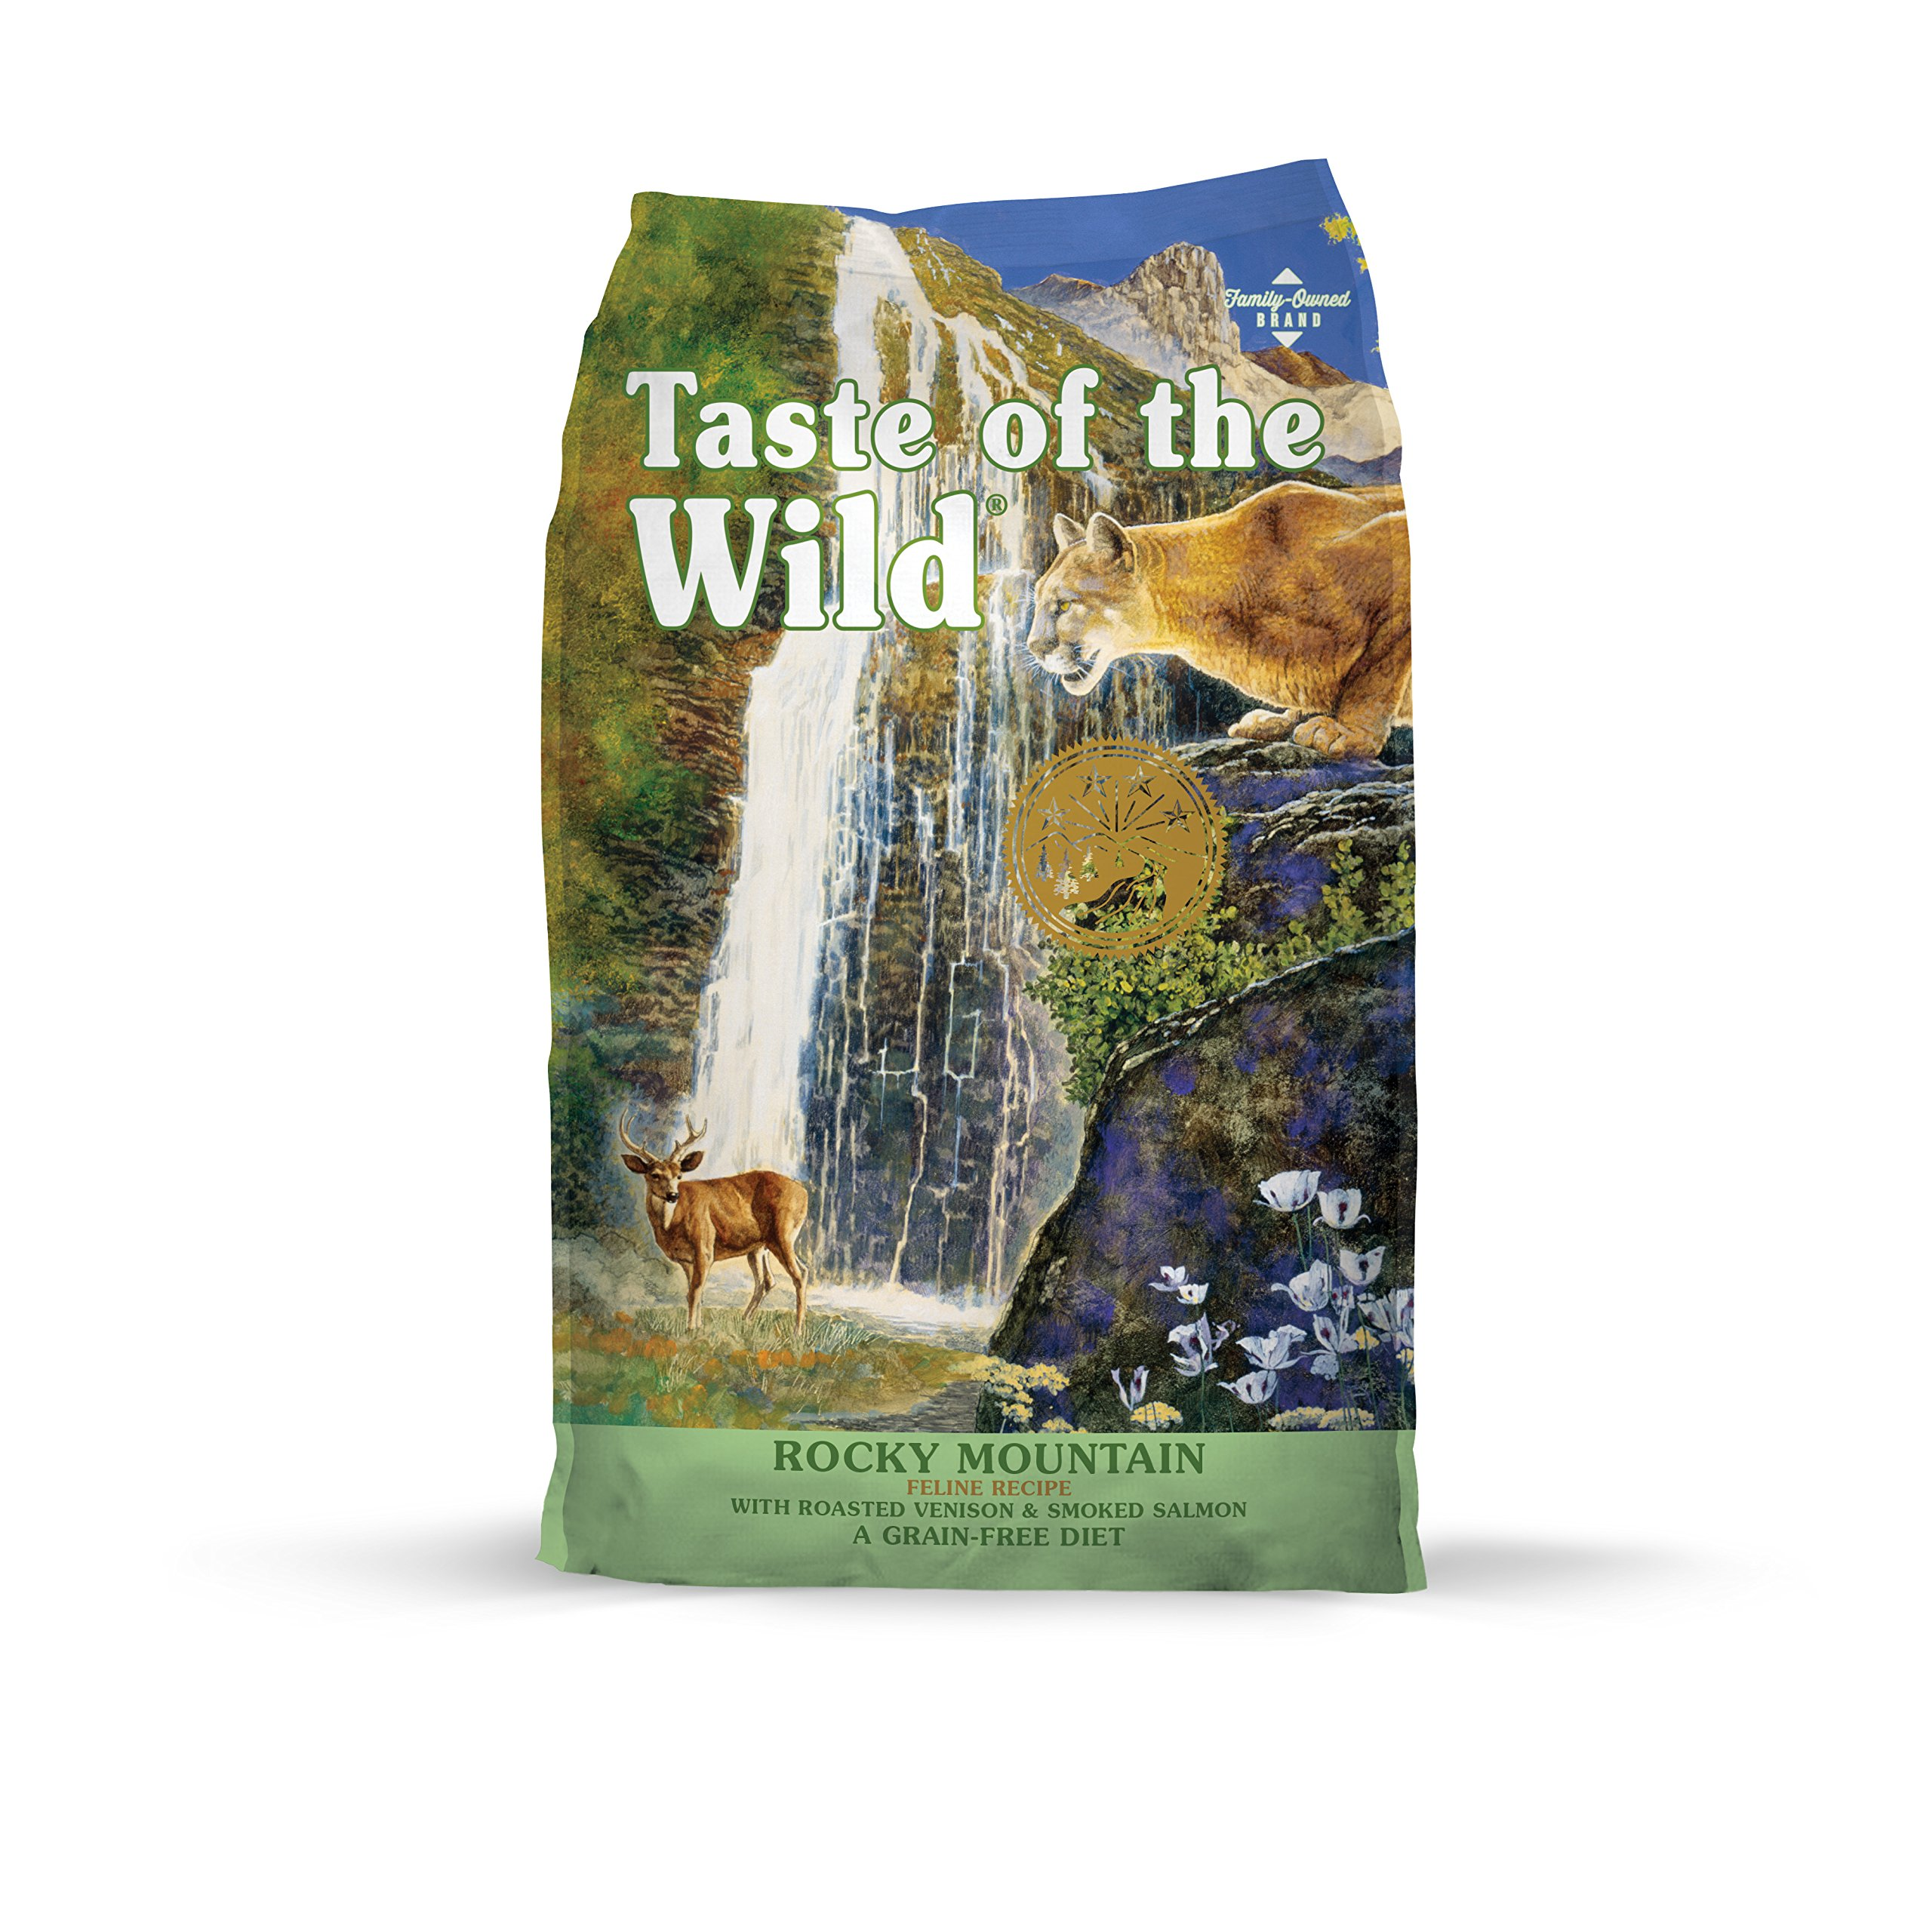 Taste of the Wild Grain Free High Protein Dry Cat Food with Natural Ingredients